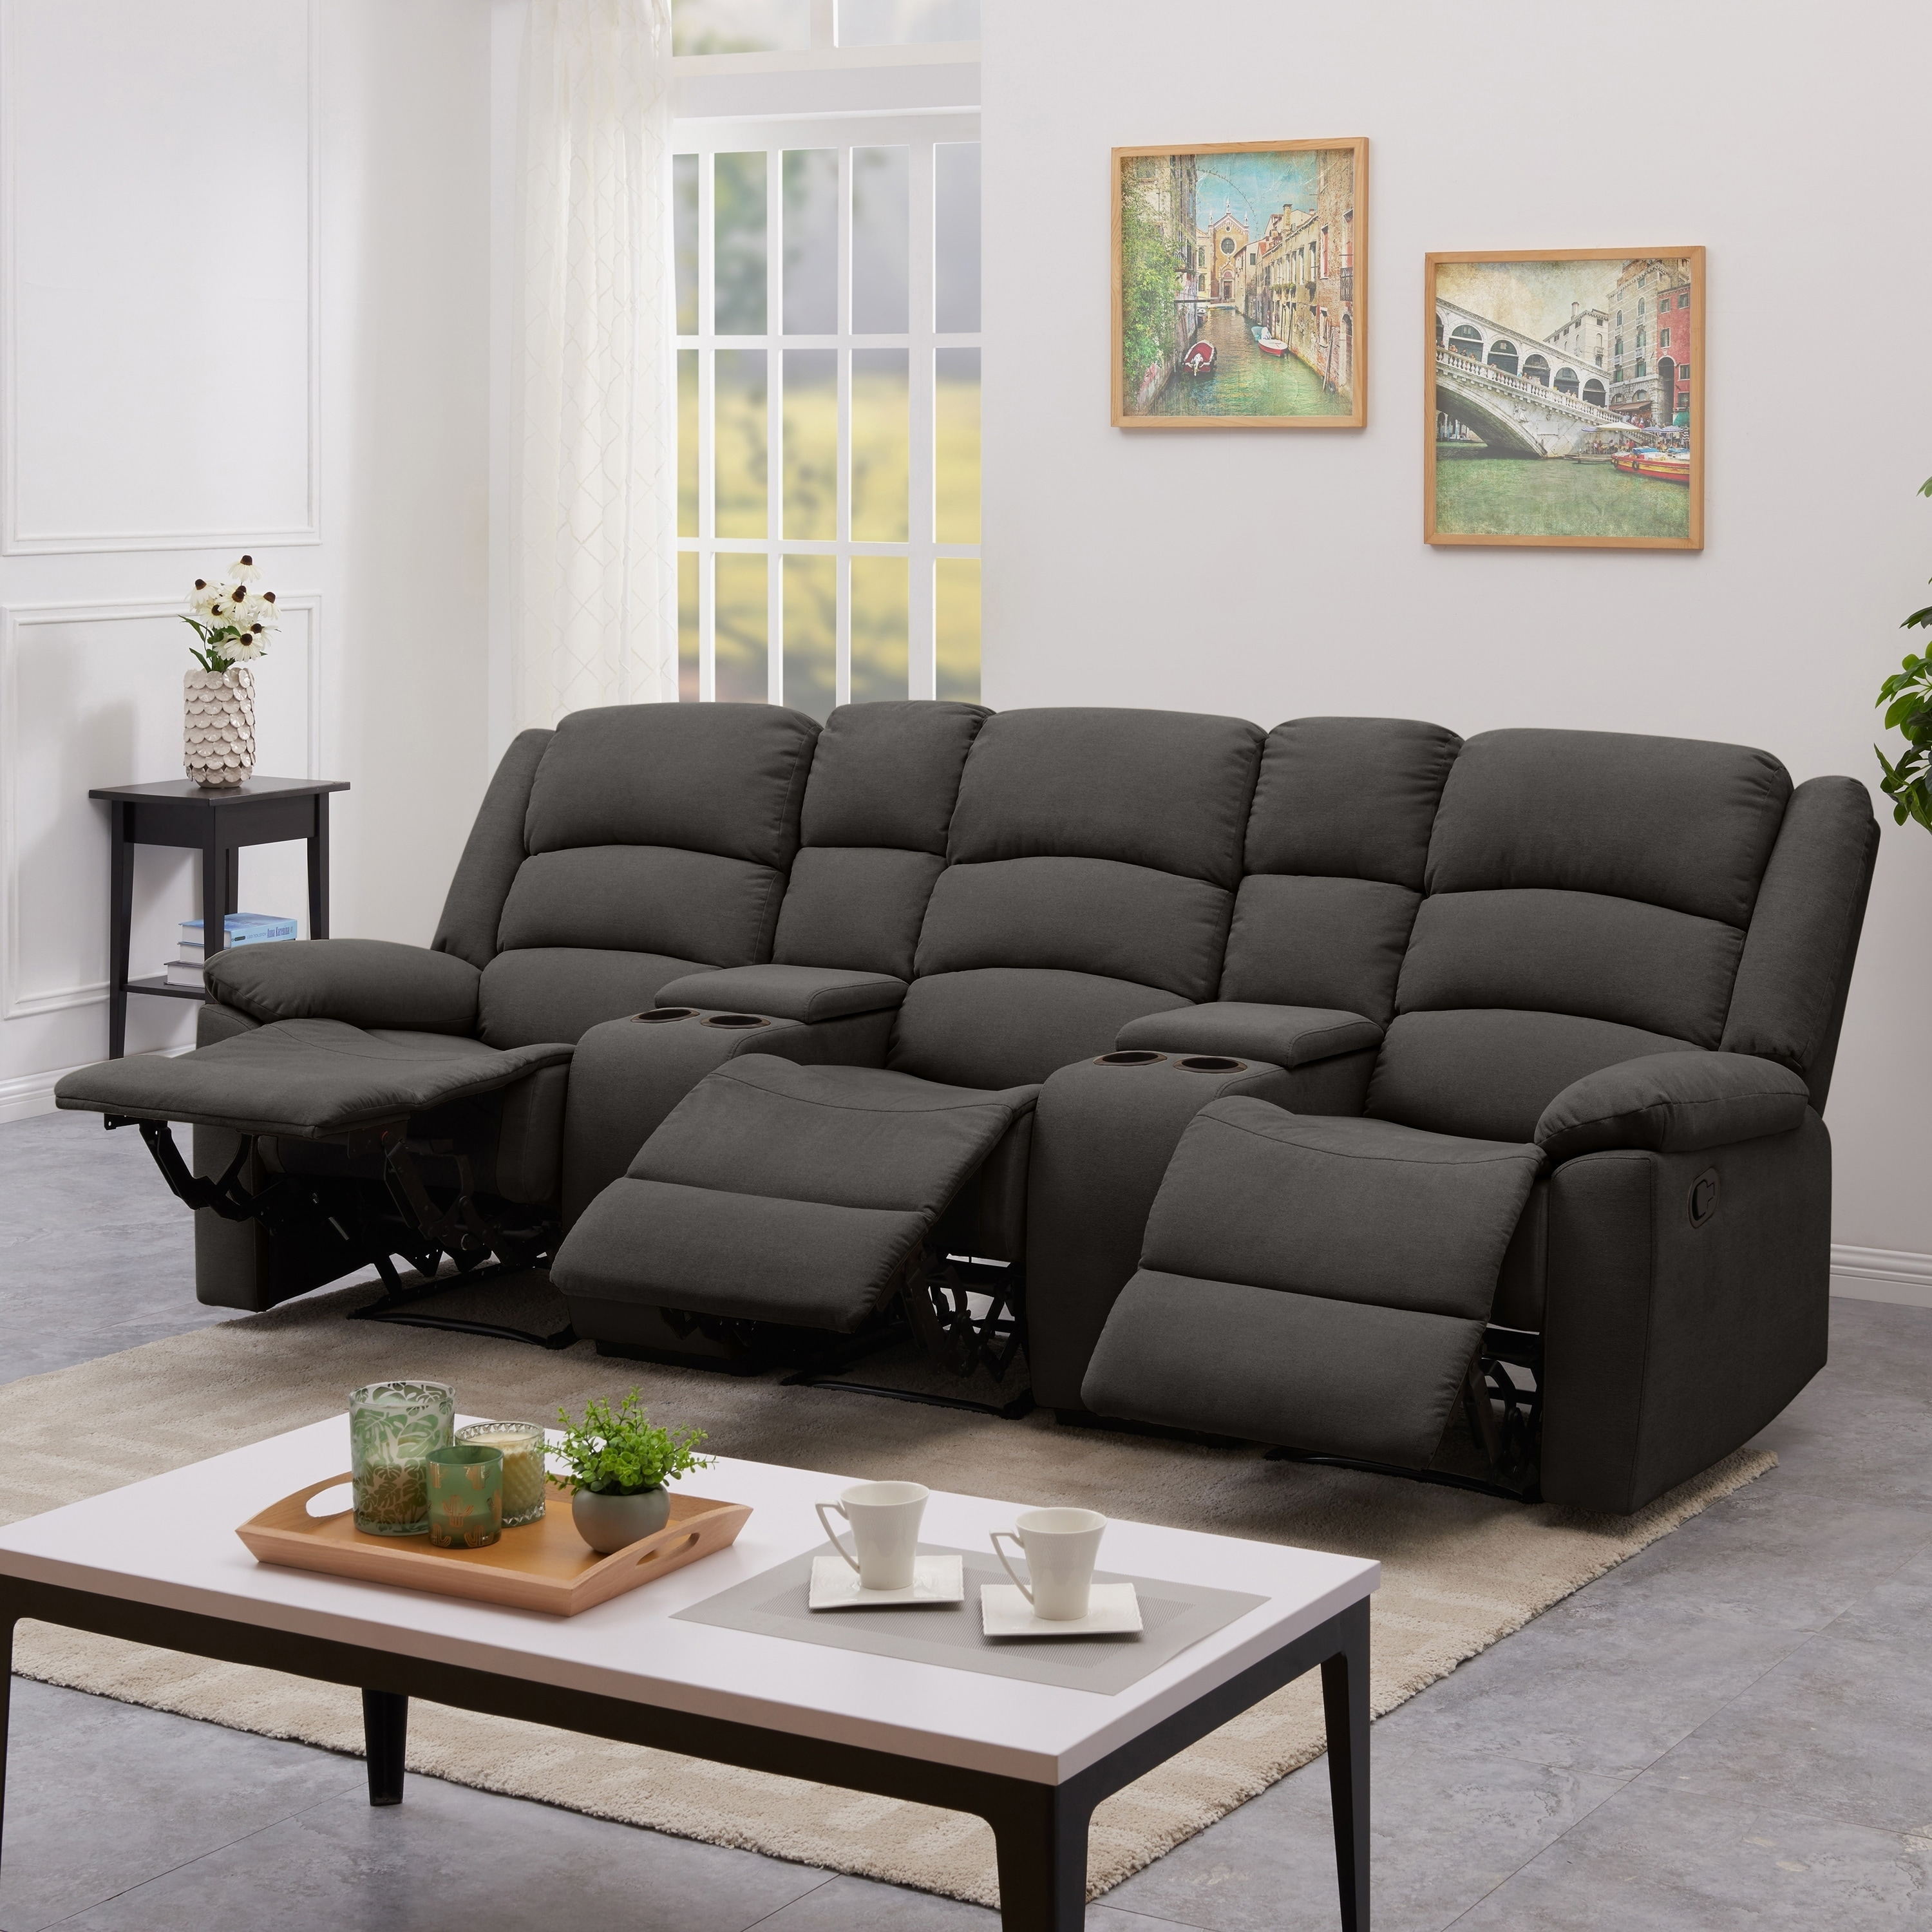 Recliner Sofas Couches